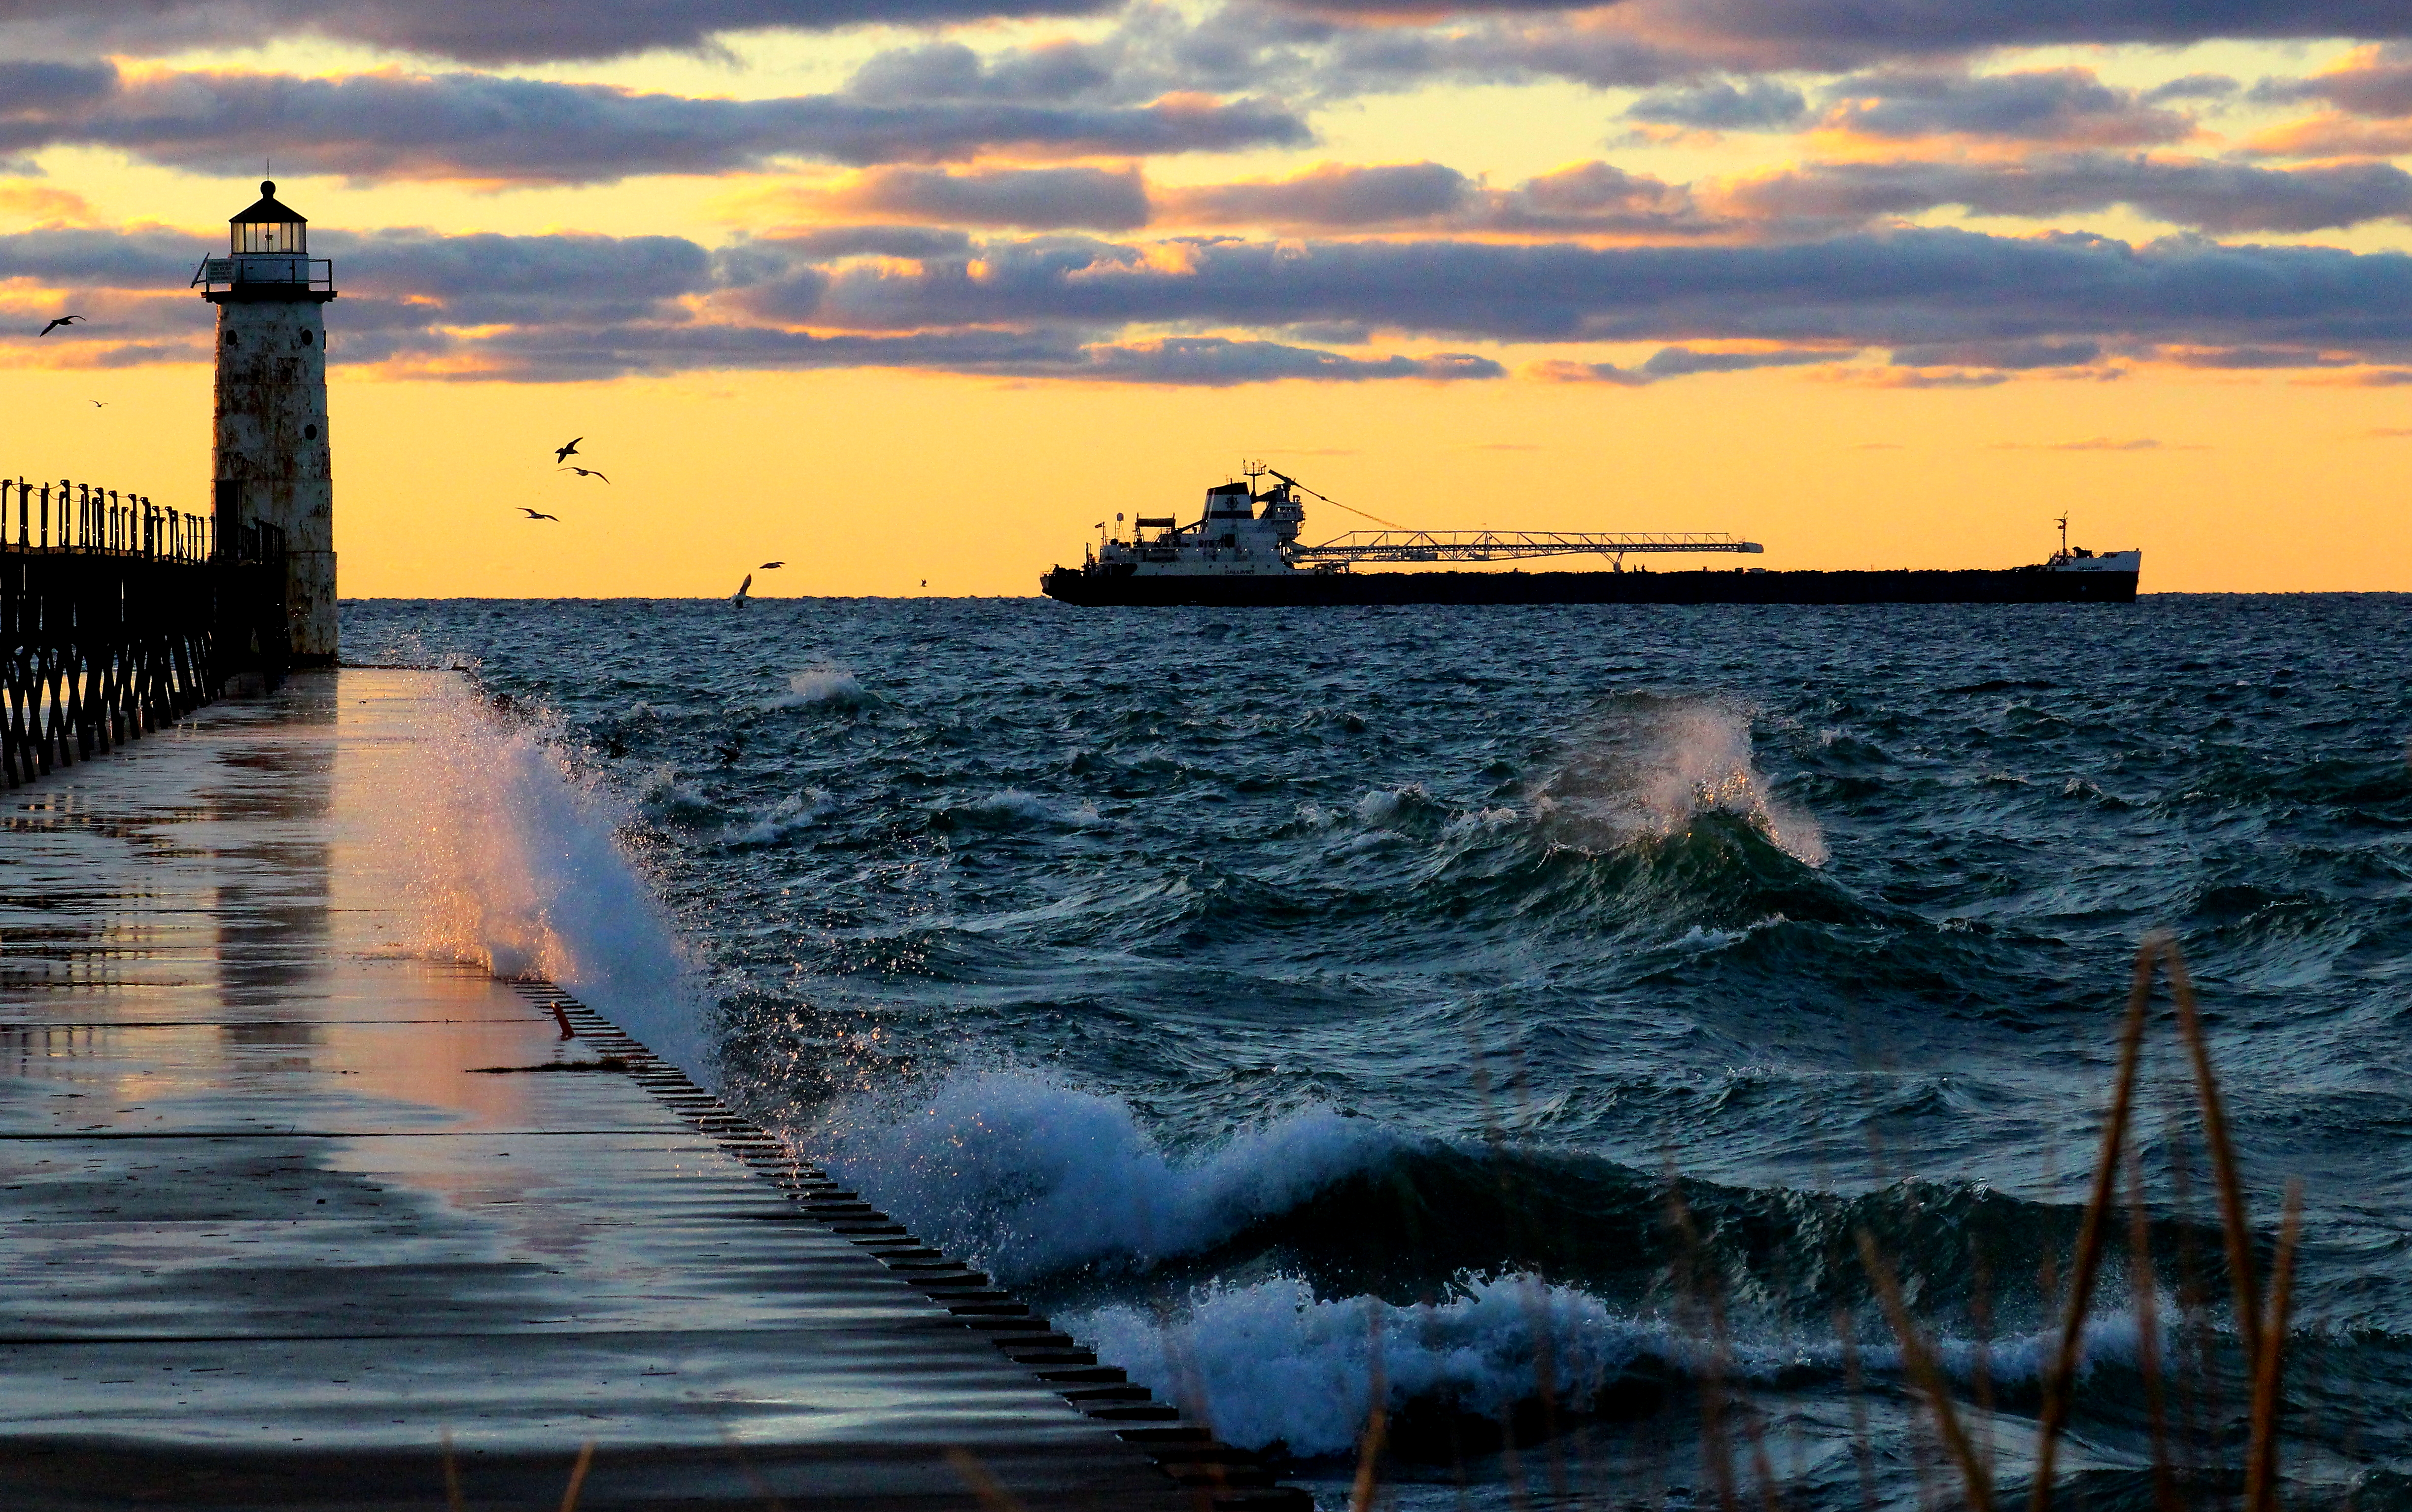 Freighter seen exiting the harbor with waves washing over Fifth Avenue pier as the sun is setting